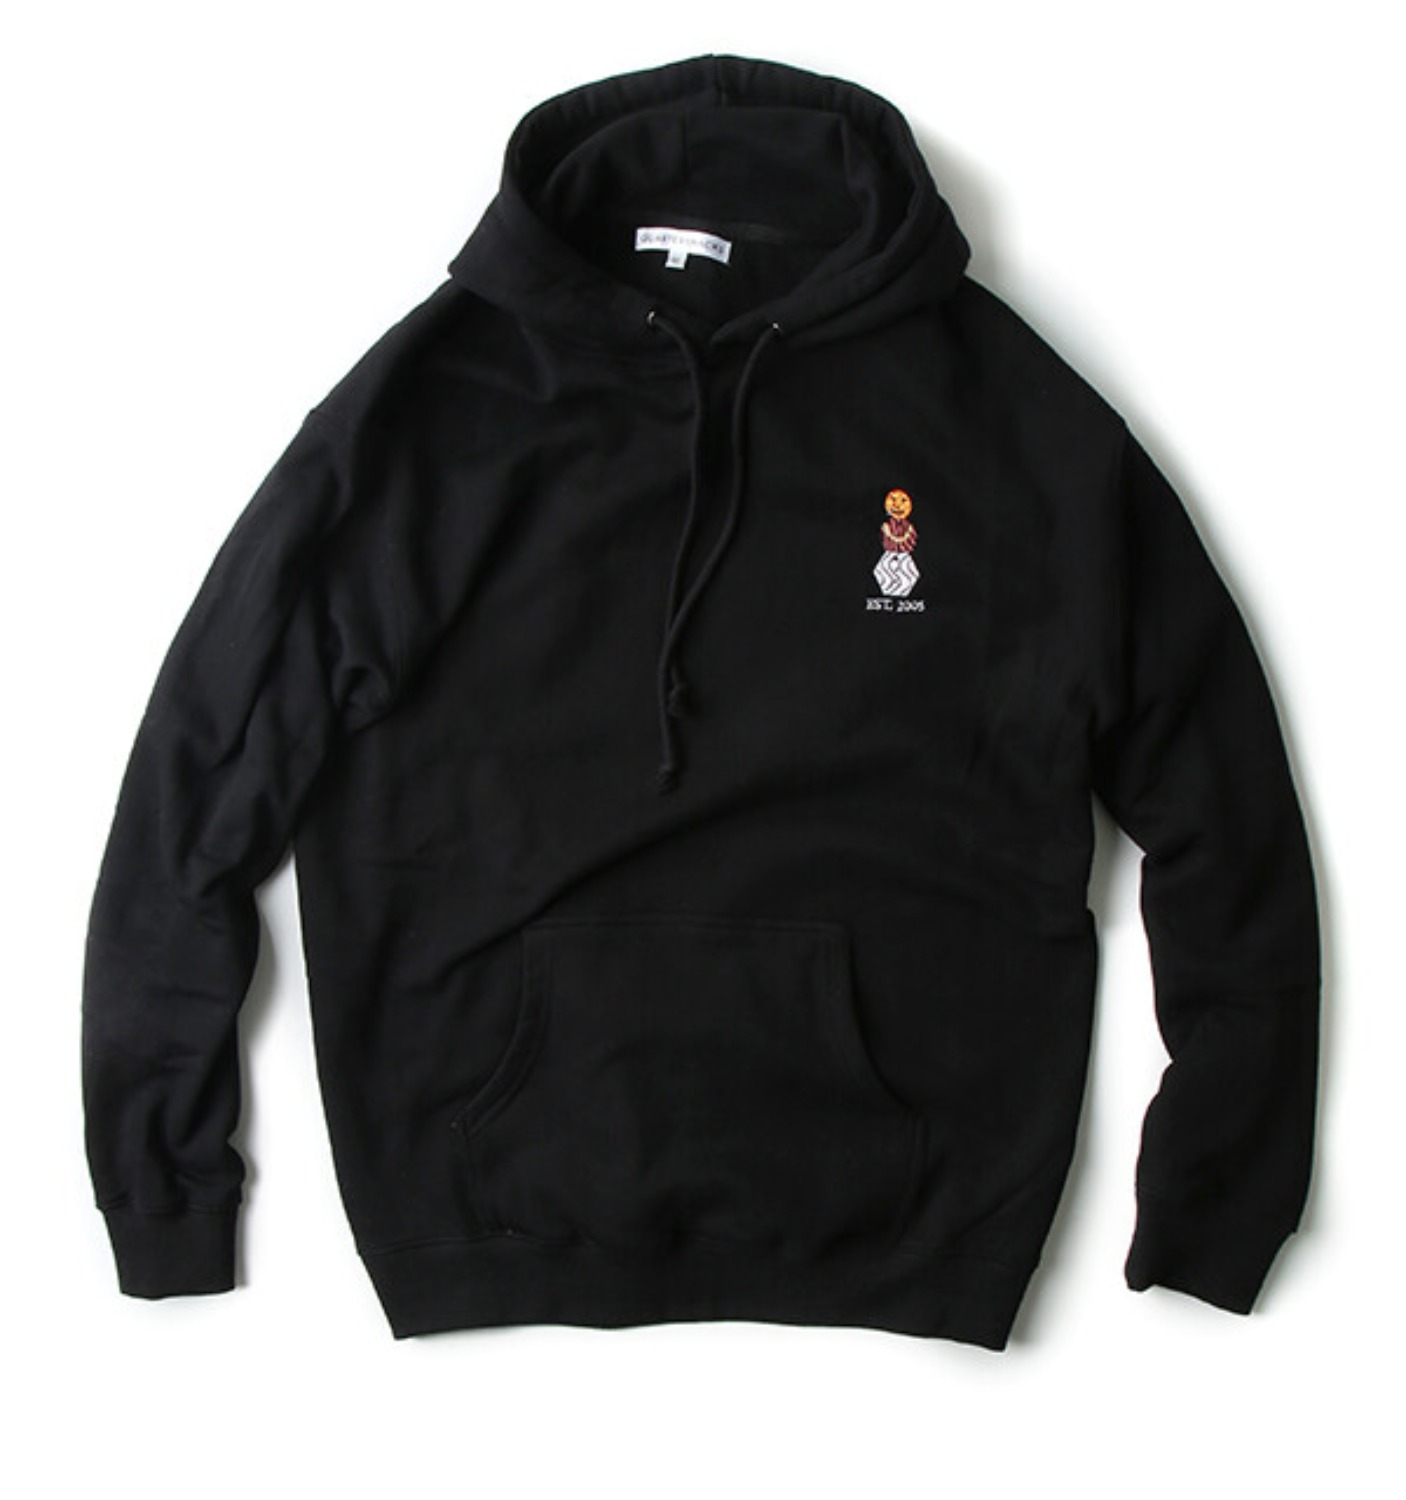 EMBROIDERED SNACKMAN HOODY BLACK